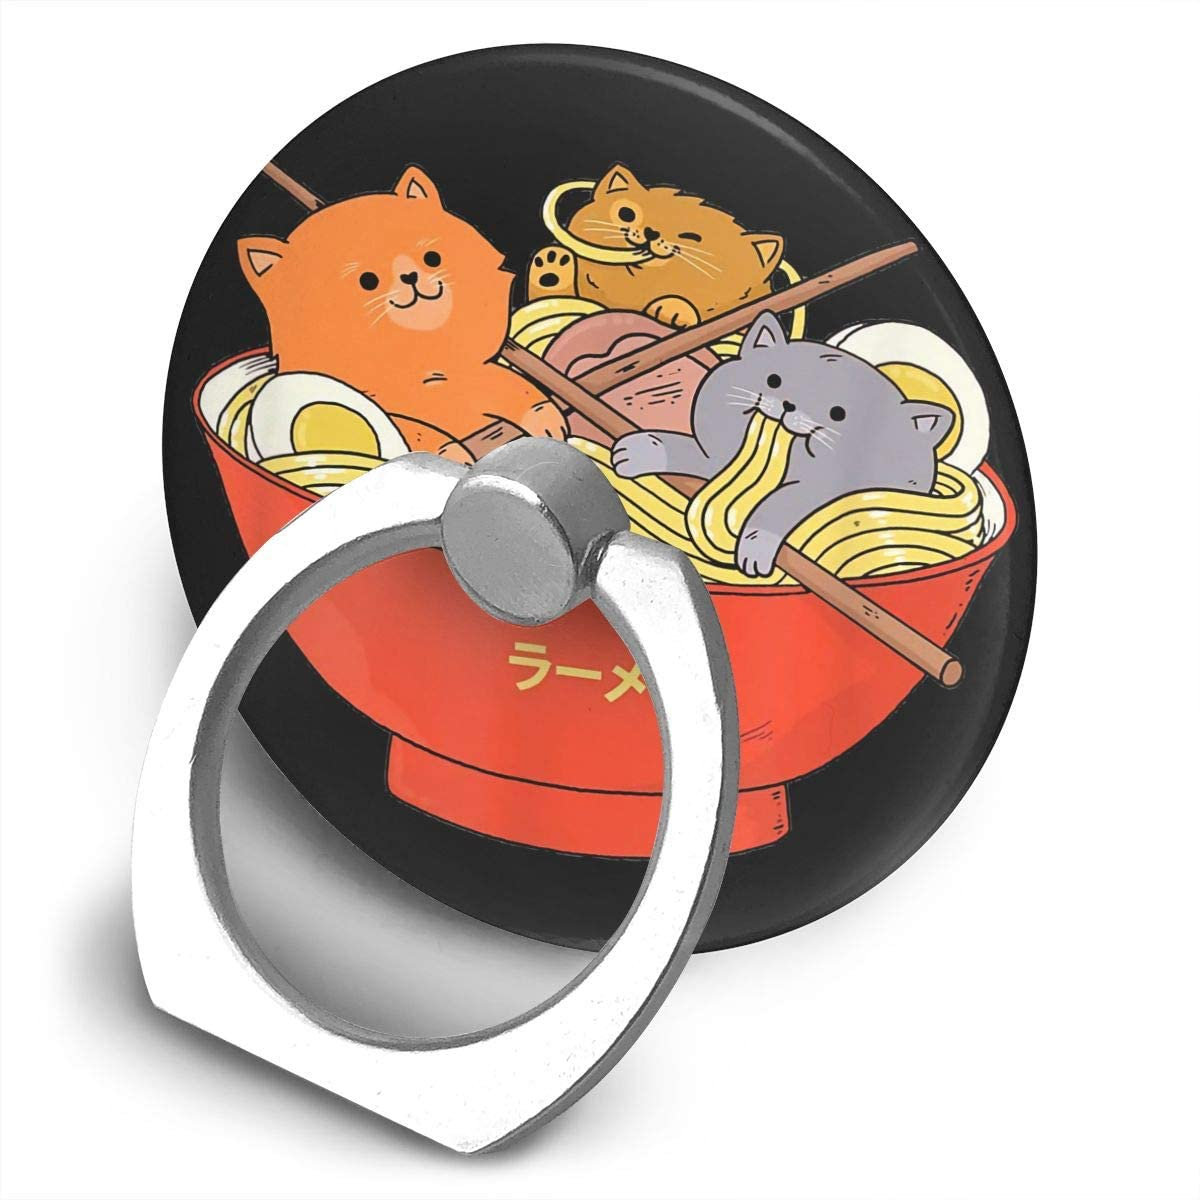 Zwinz Kawaii Anime Cat Japanese Ramen Noodles Gift Alloy Mobile Phone Ring Bracket,360 Degree Rotating Ring Stand Grip Mounts